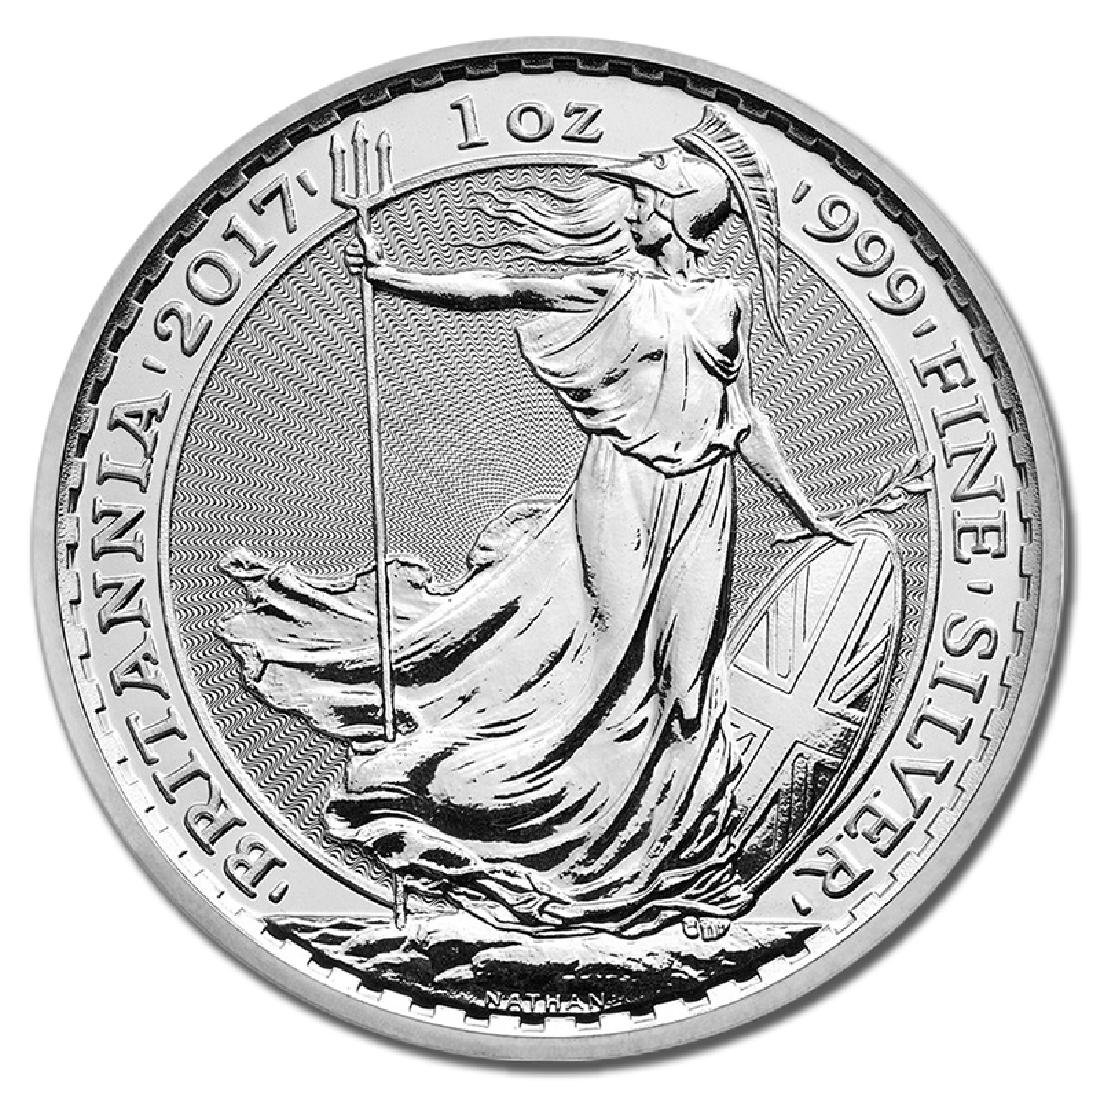 Uncirculated Silver Britannia 1 oz 2017